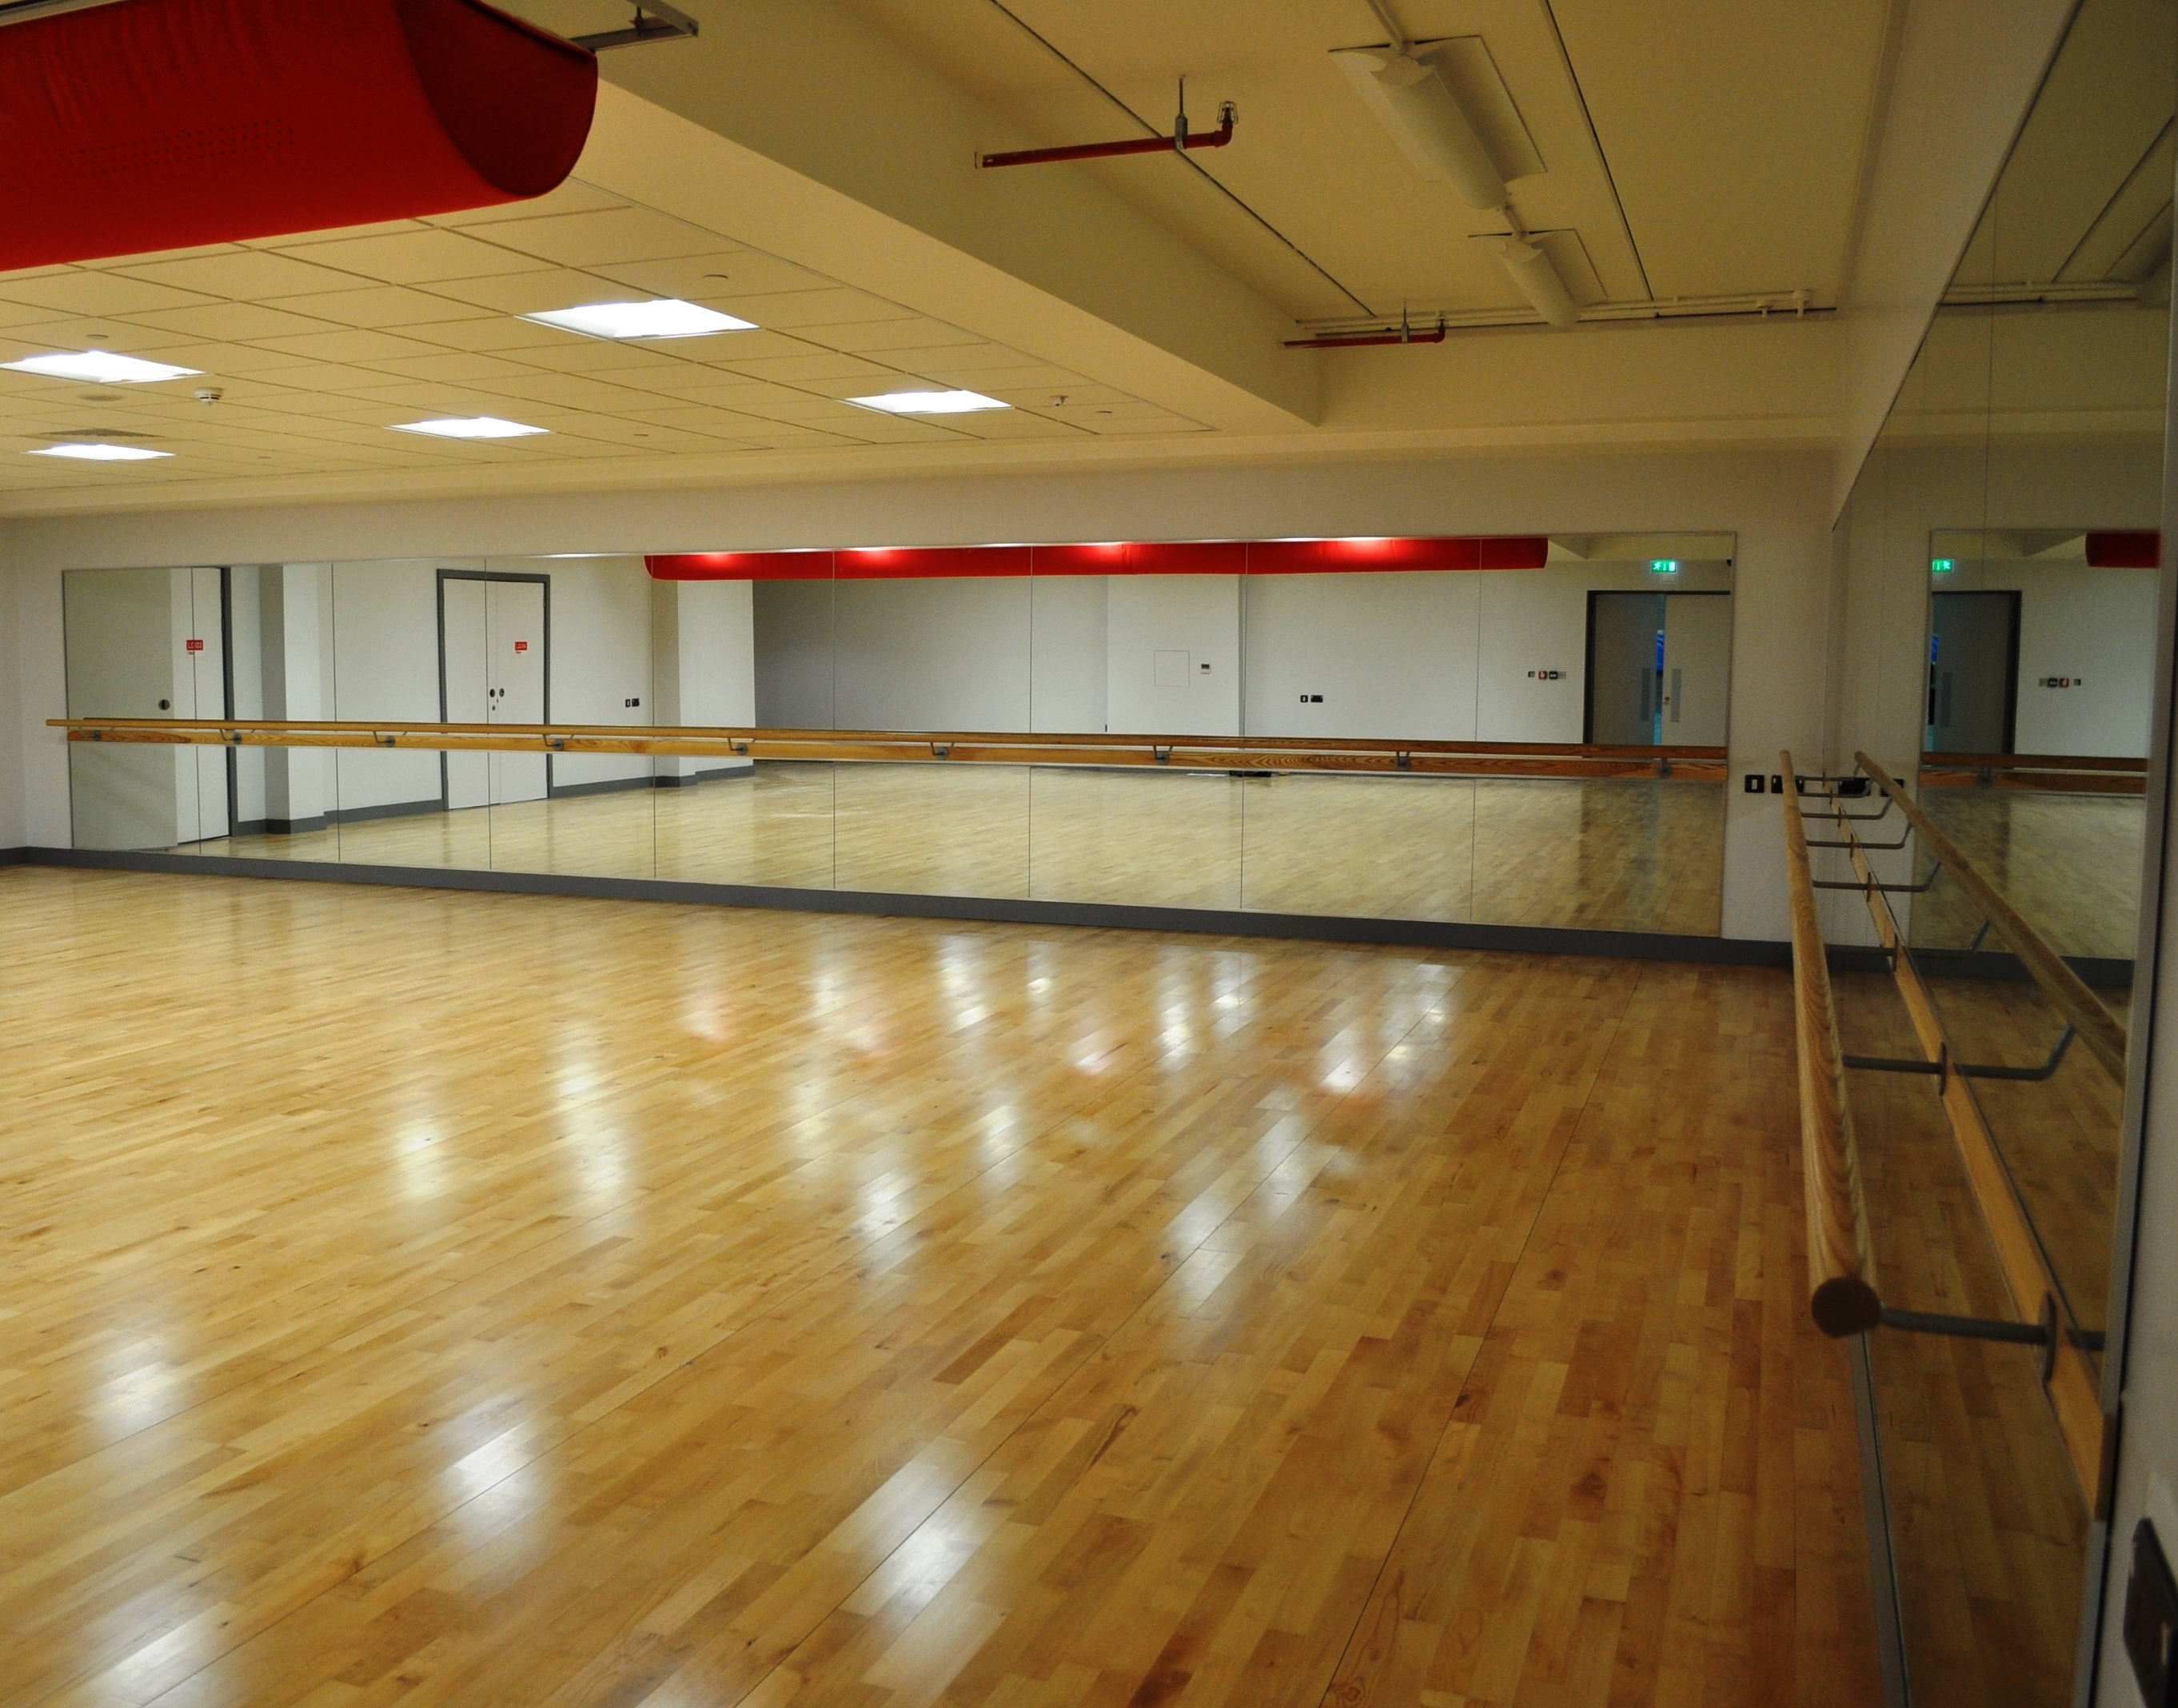 Large Gym Mirrors – Wall Fixed Mirror Solutions – Glass Pertaining To Well Known Large Wall Mirrors For Gym (View 5 of 20)